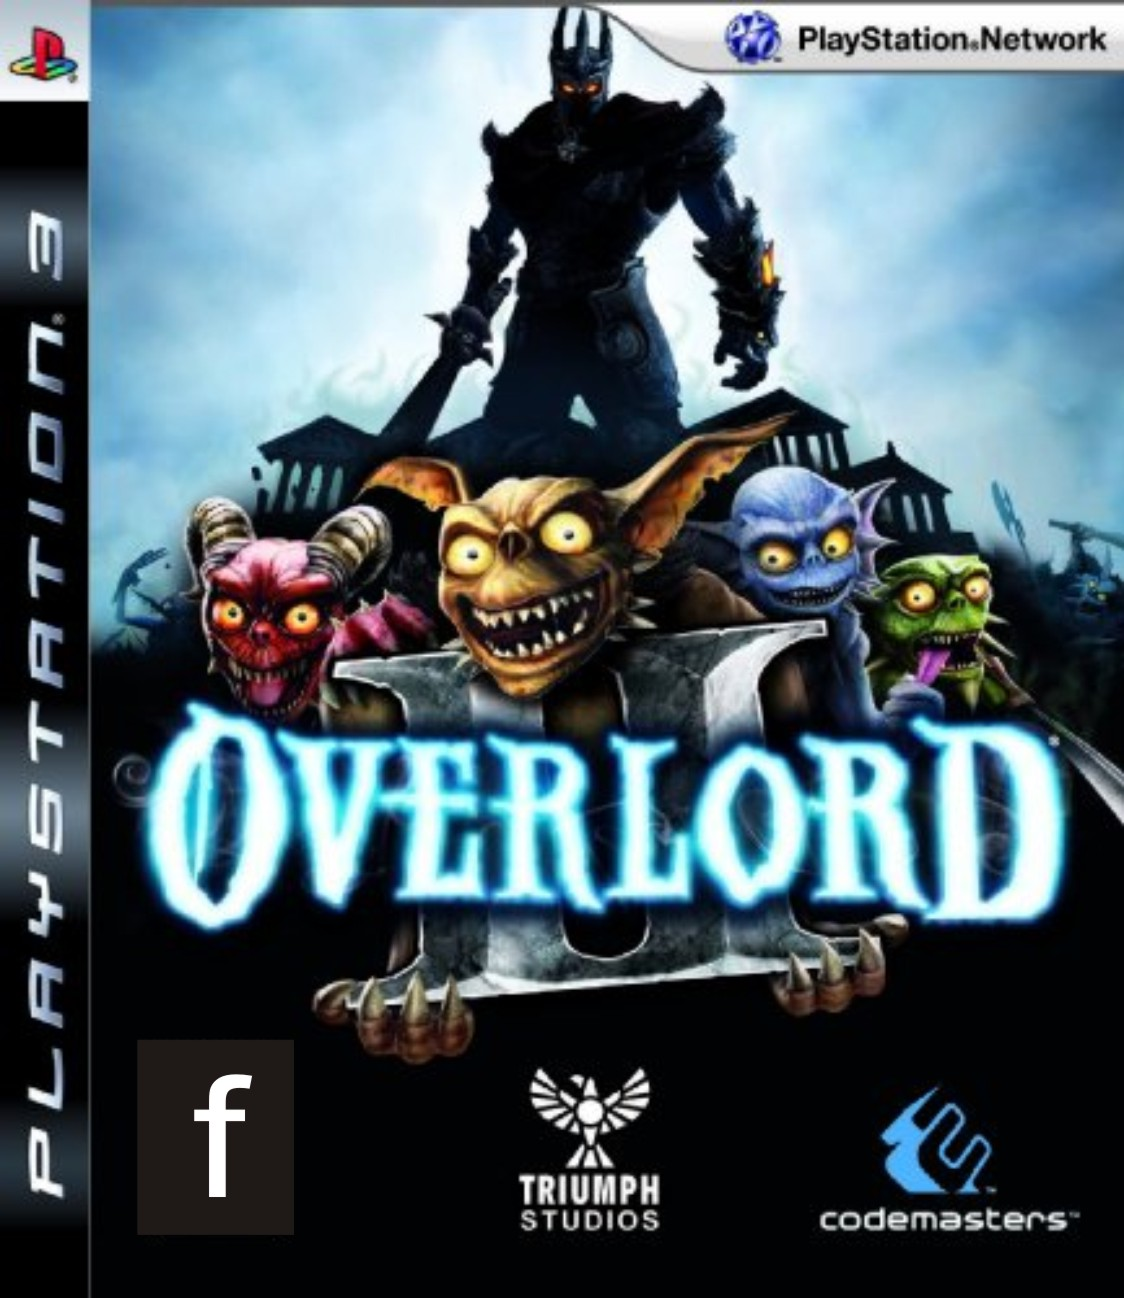 Ps3 games free download iso